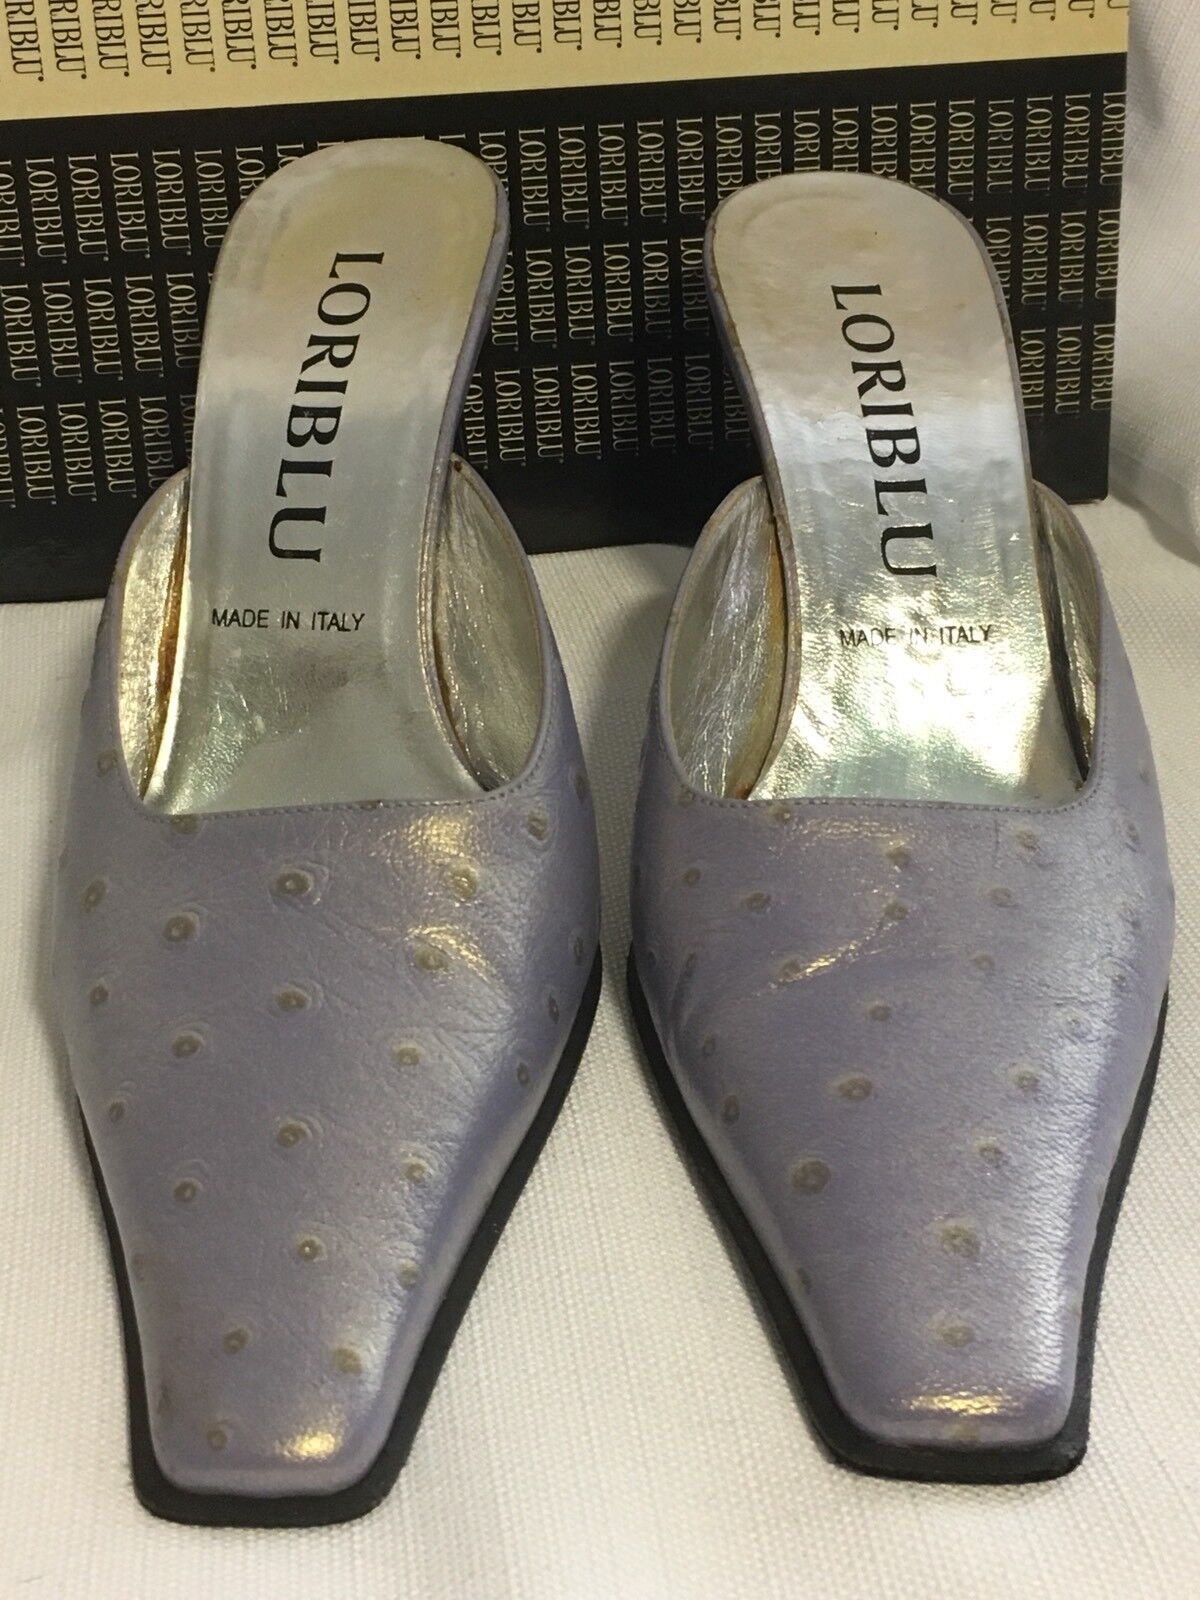 schuhe LORIBlau 3  High Heel LIGHT lila LAVENDAR Slides Slides Slides Leather 36 1 2 6.5 2bf043